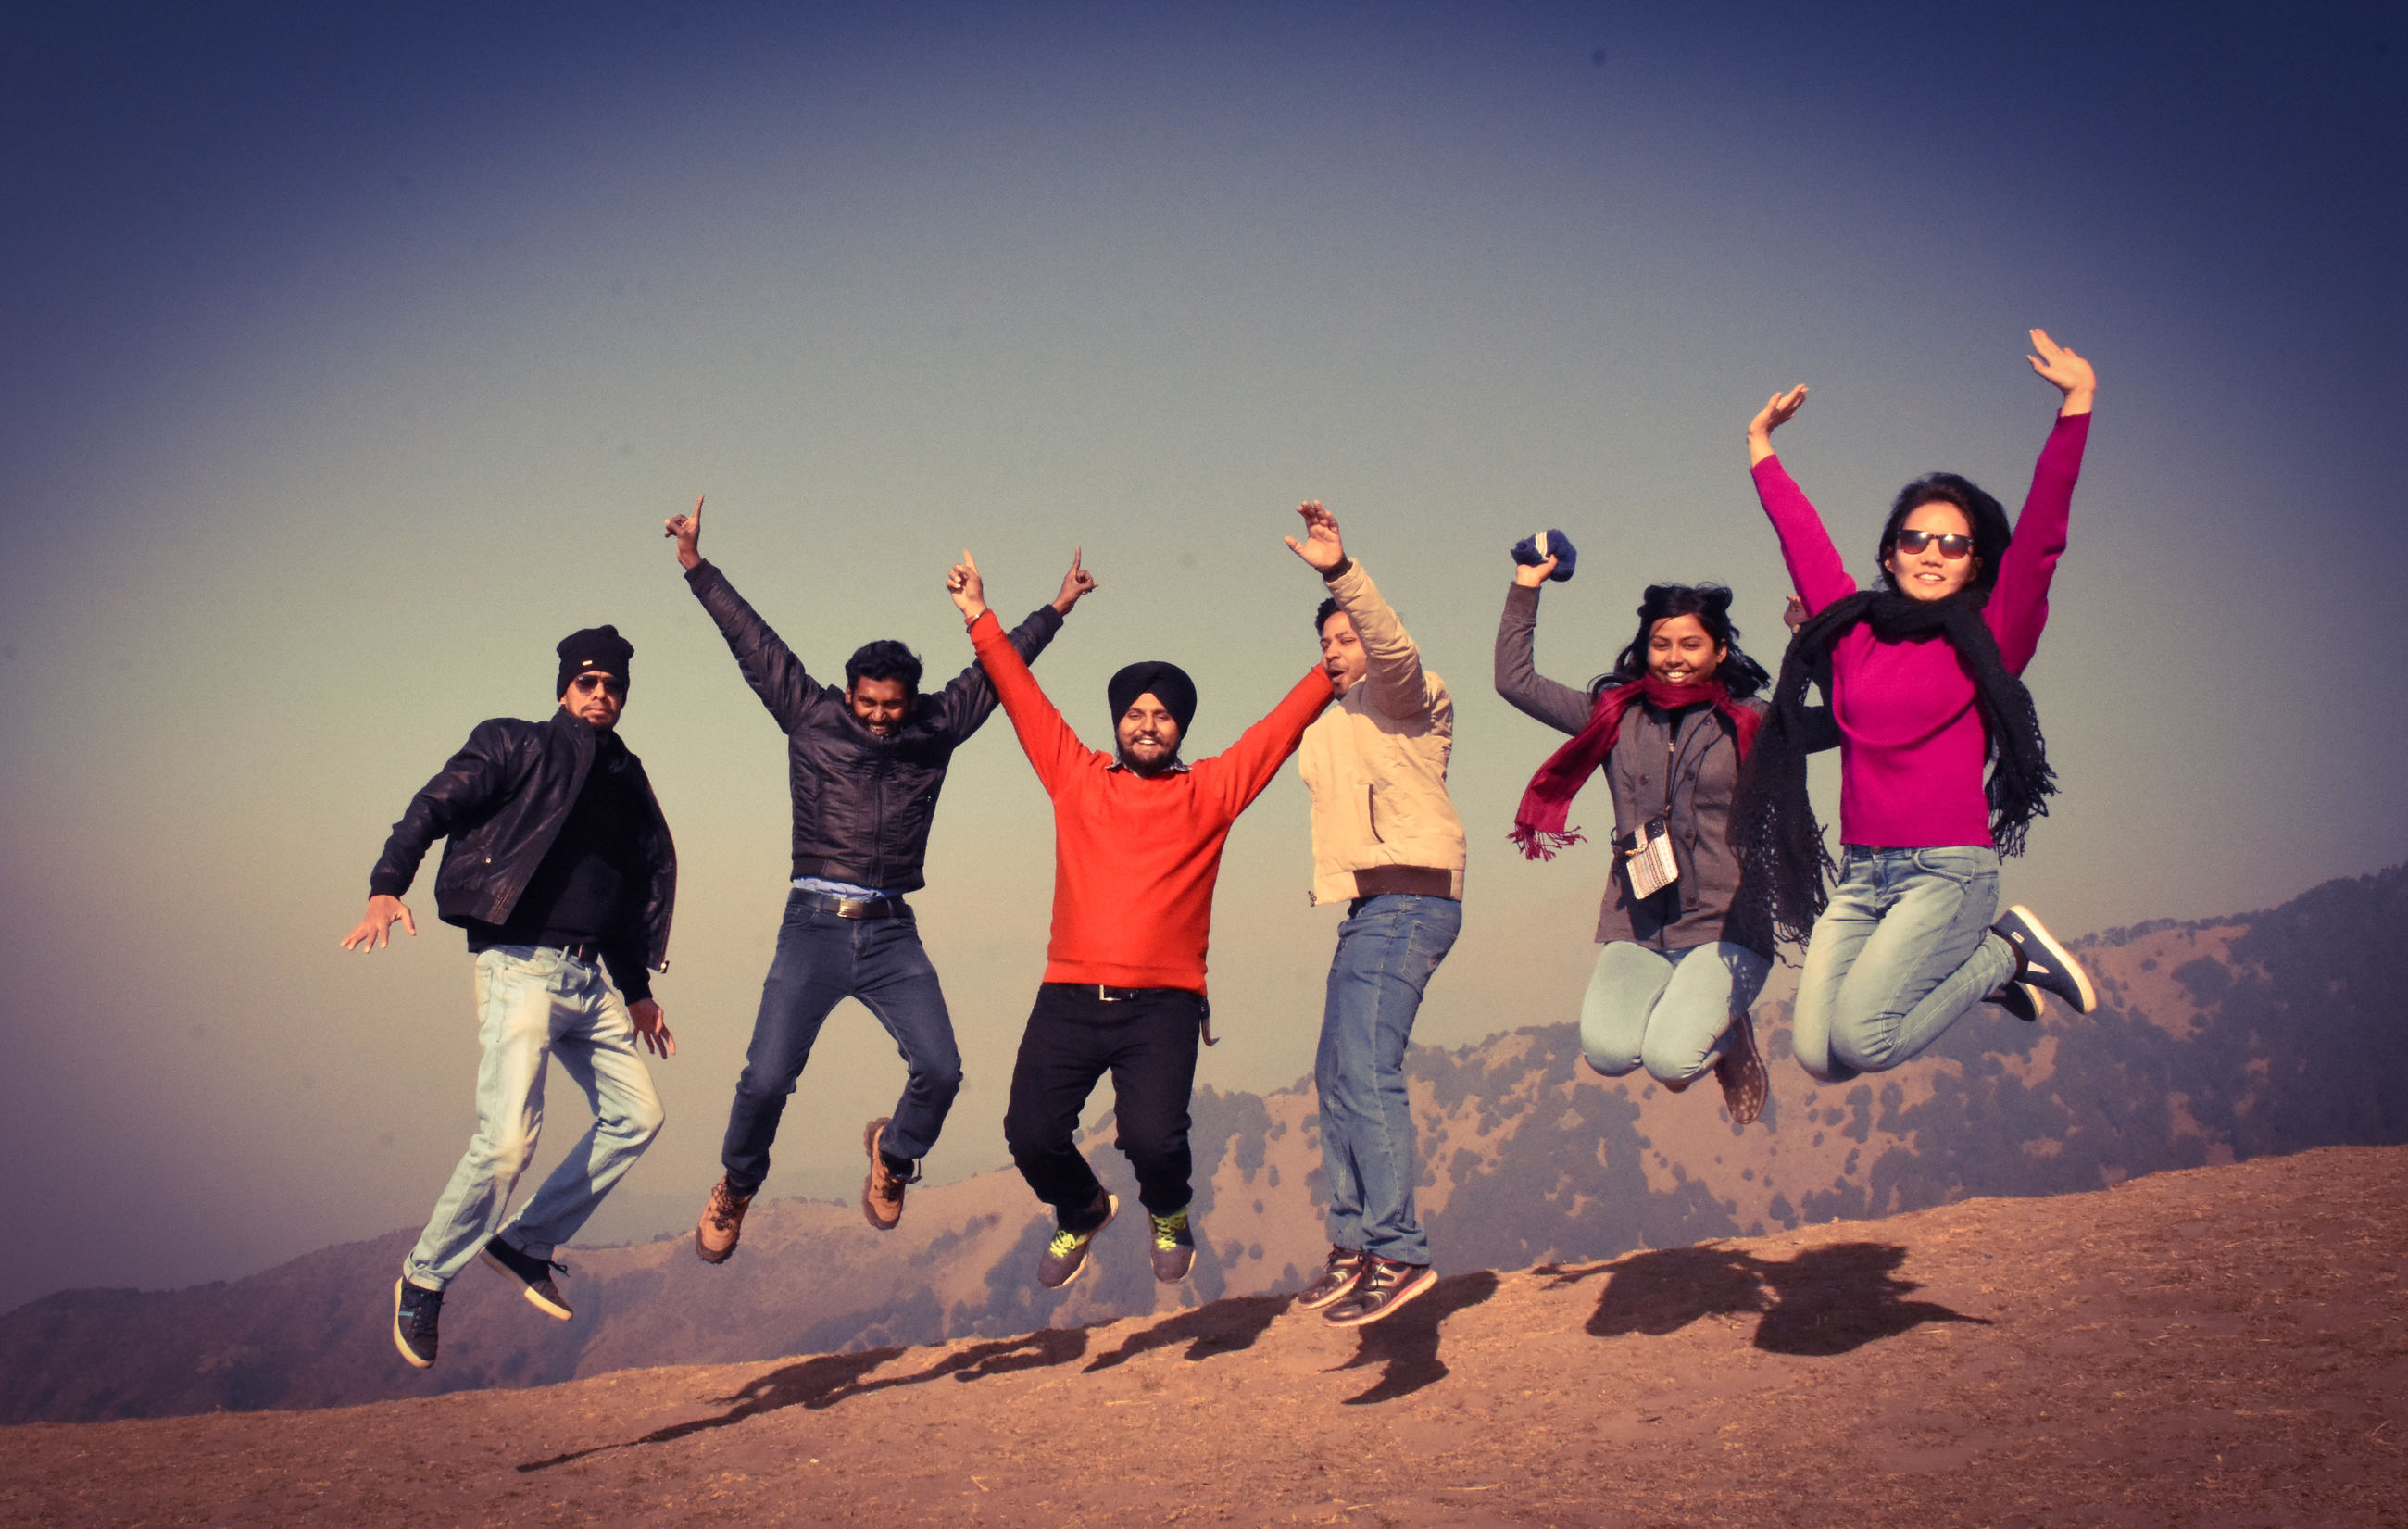 sky, full length, leisure activity, happiness, emotion, real people, togetherness, friendship, lifestyles, men, enjoyment, jumping, mid-air, clear sky, group of people, nature, land, human arm, fun, sand, positive emotion, limb, arms raised